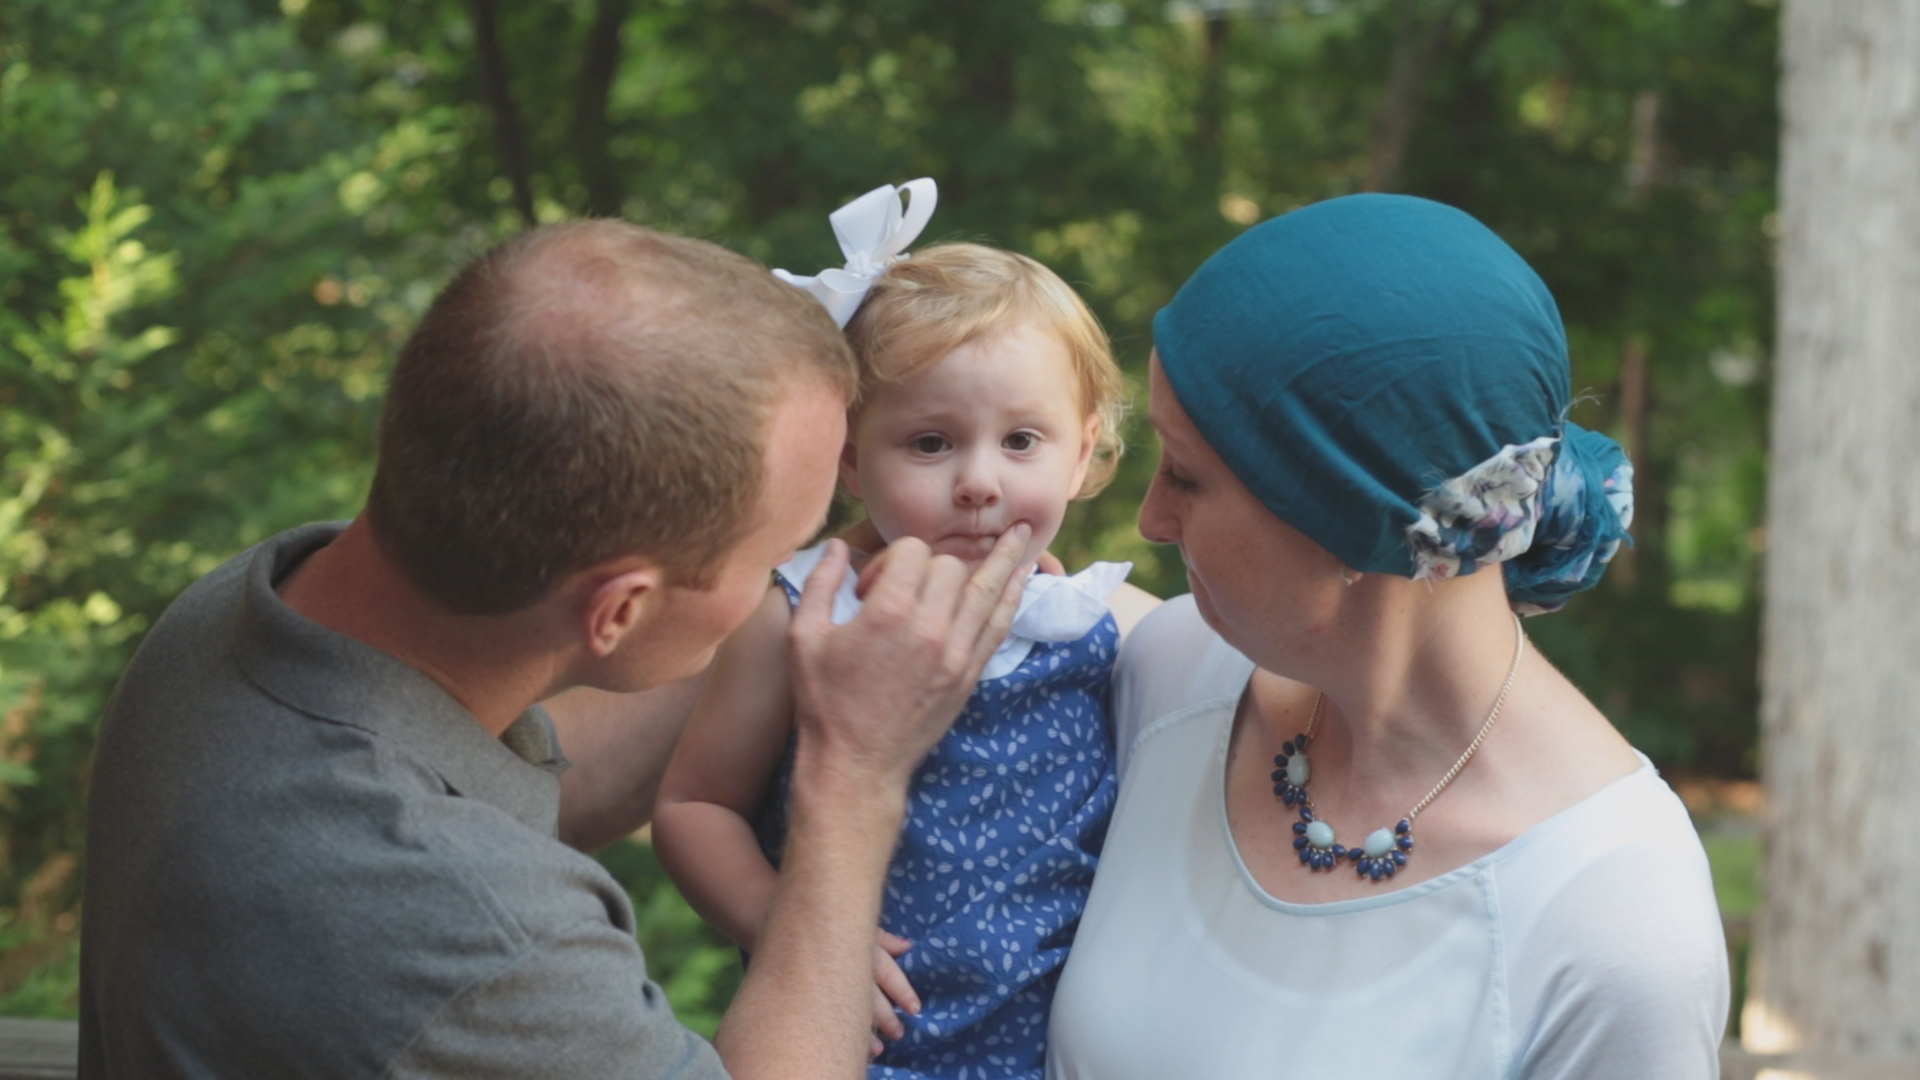 Breast cancer patient Lori Elliott and family posing for photo in Raleigh North Carolina